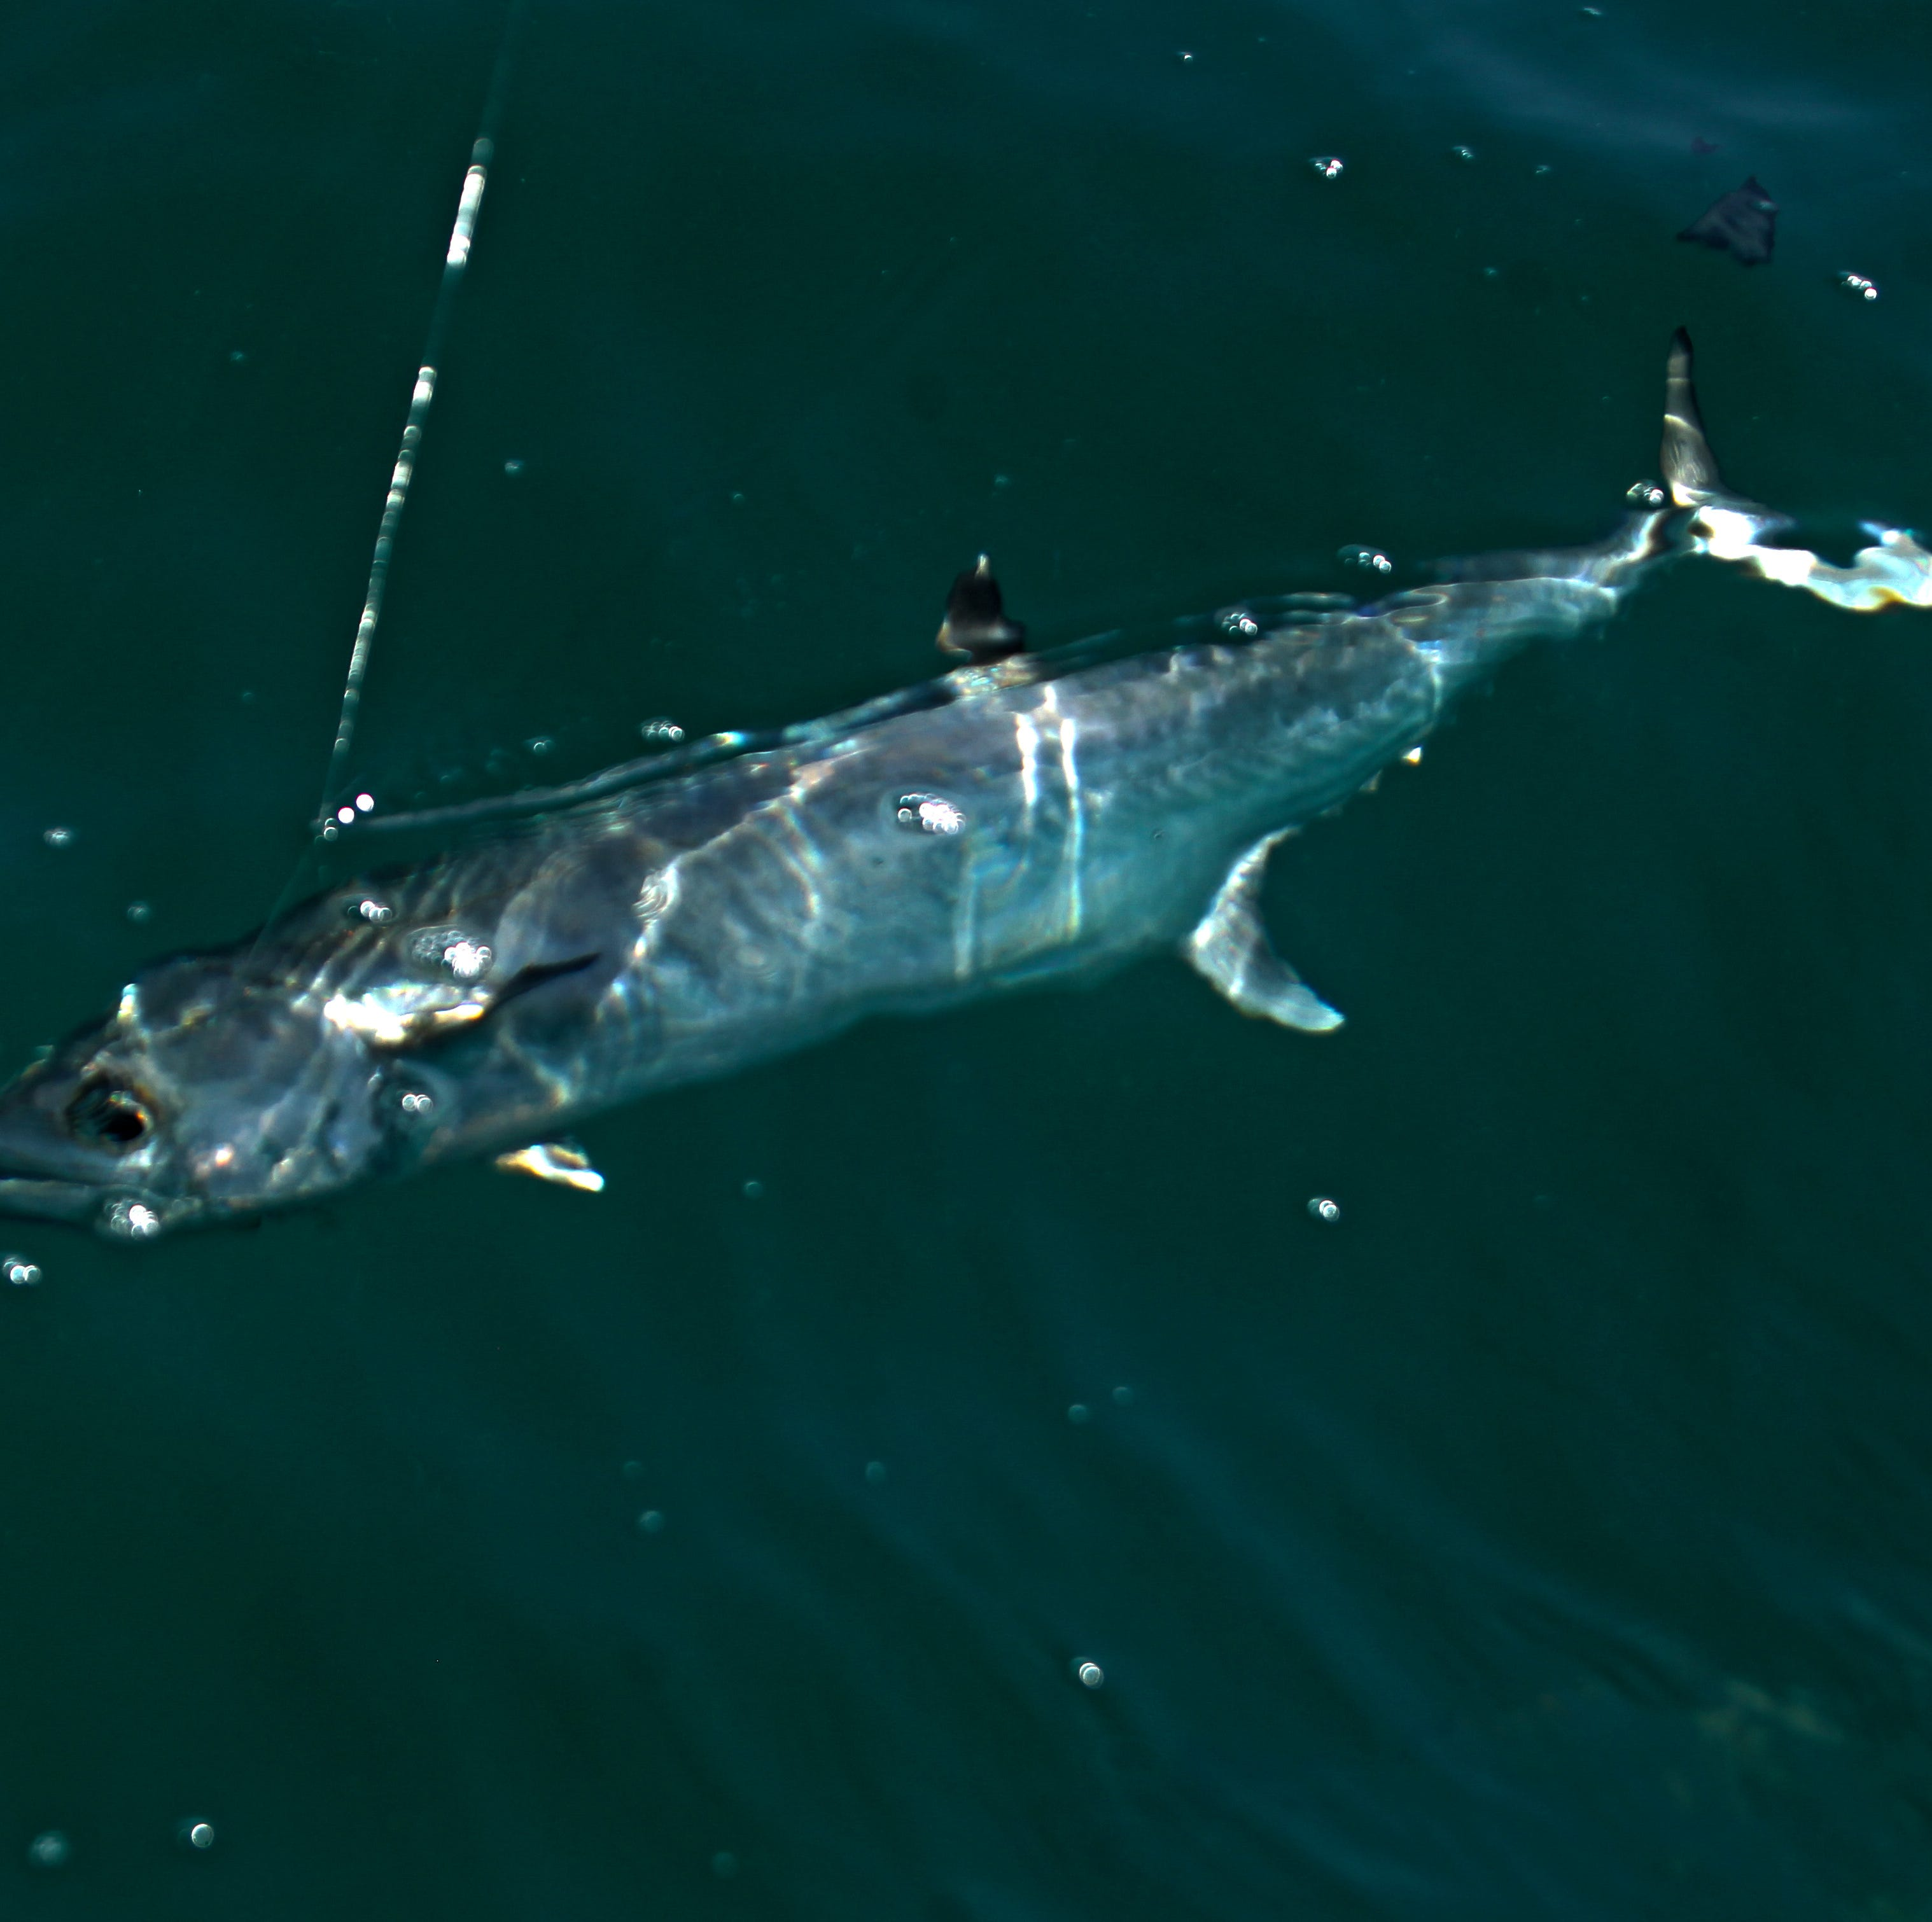 Texas tarpon among the predators below Corpus Christi's calm waves